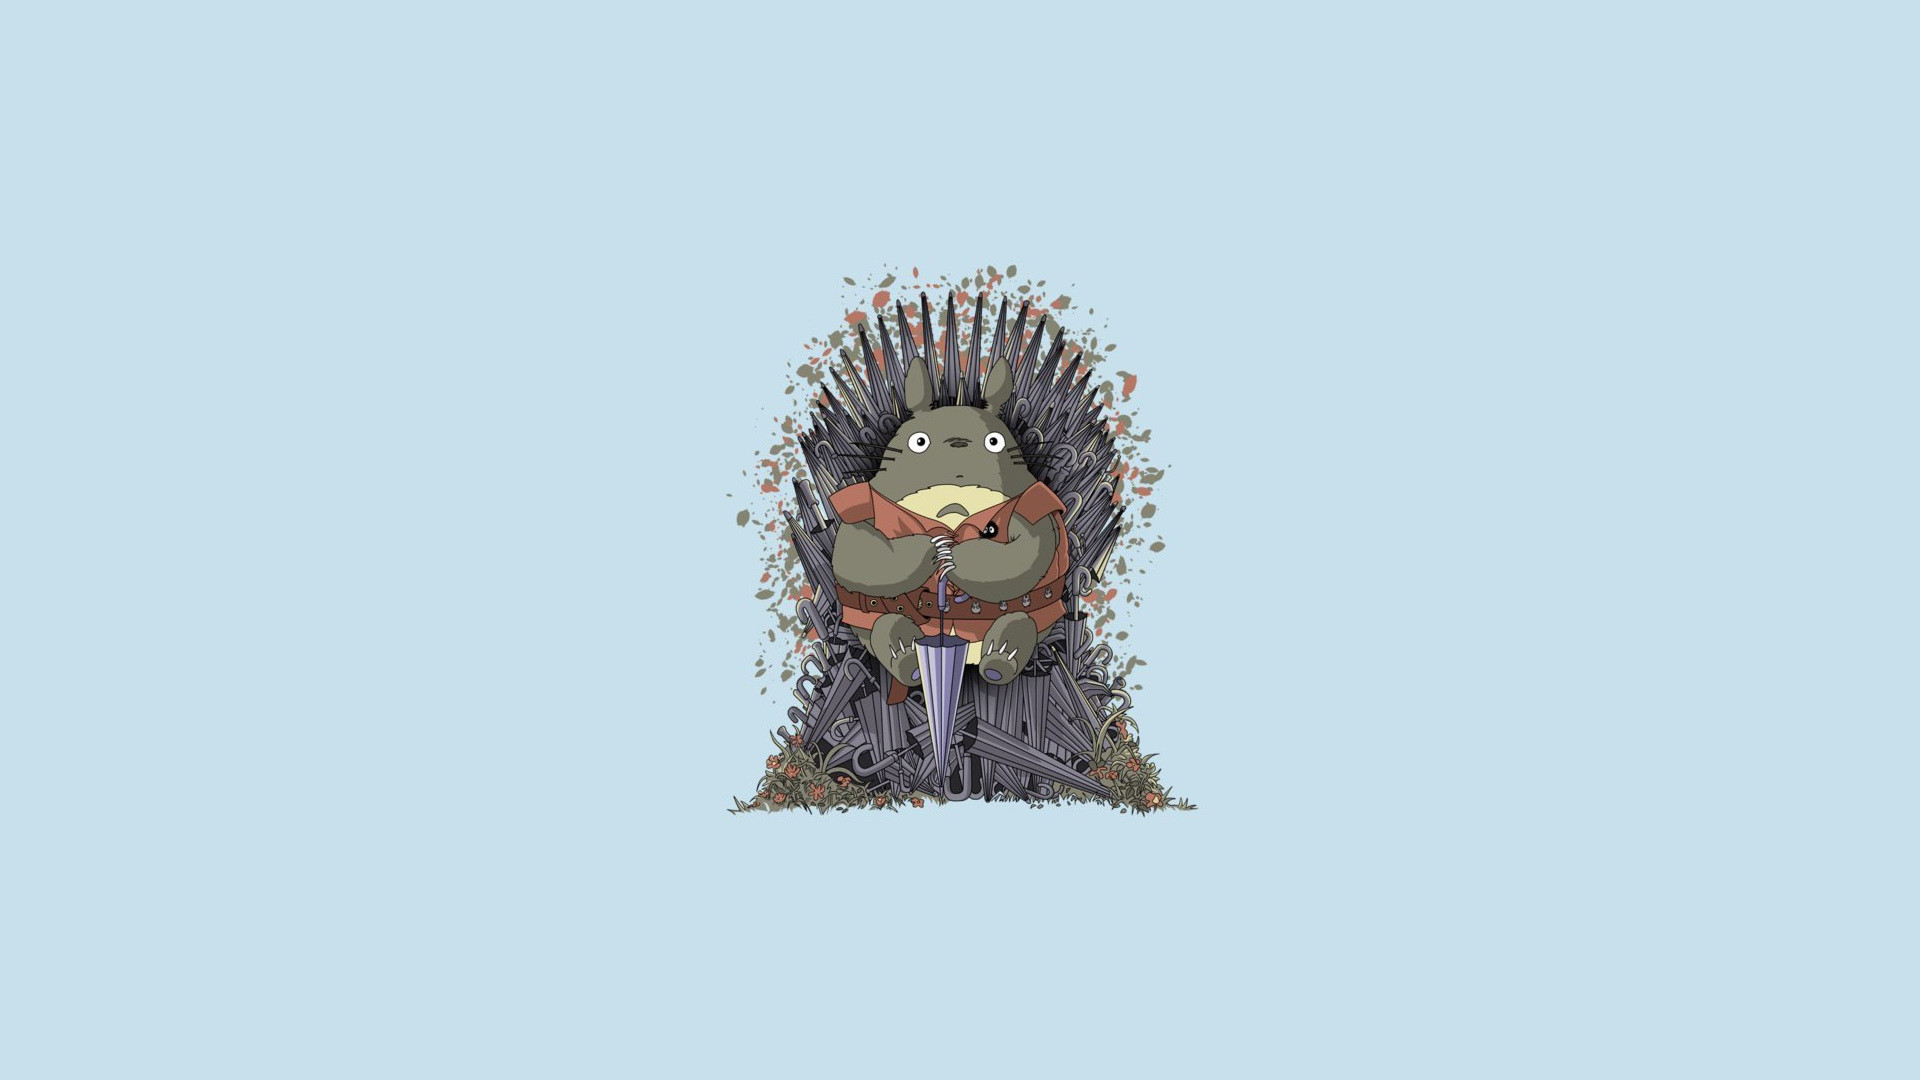 Game Of Thrones and Totoro Mashup Wallpaper [1920 x 1080] …